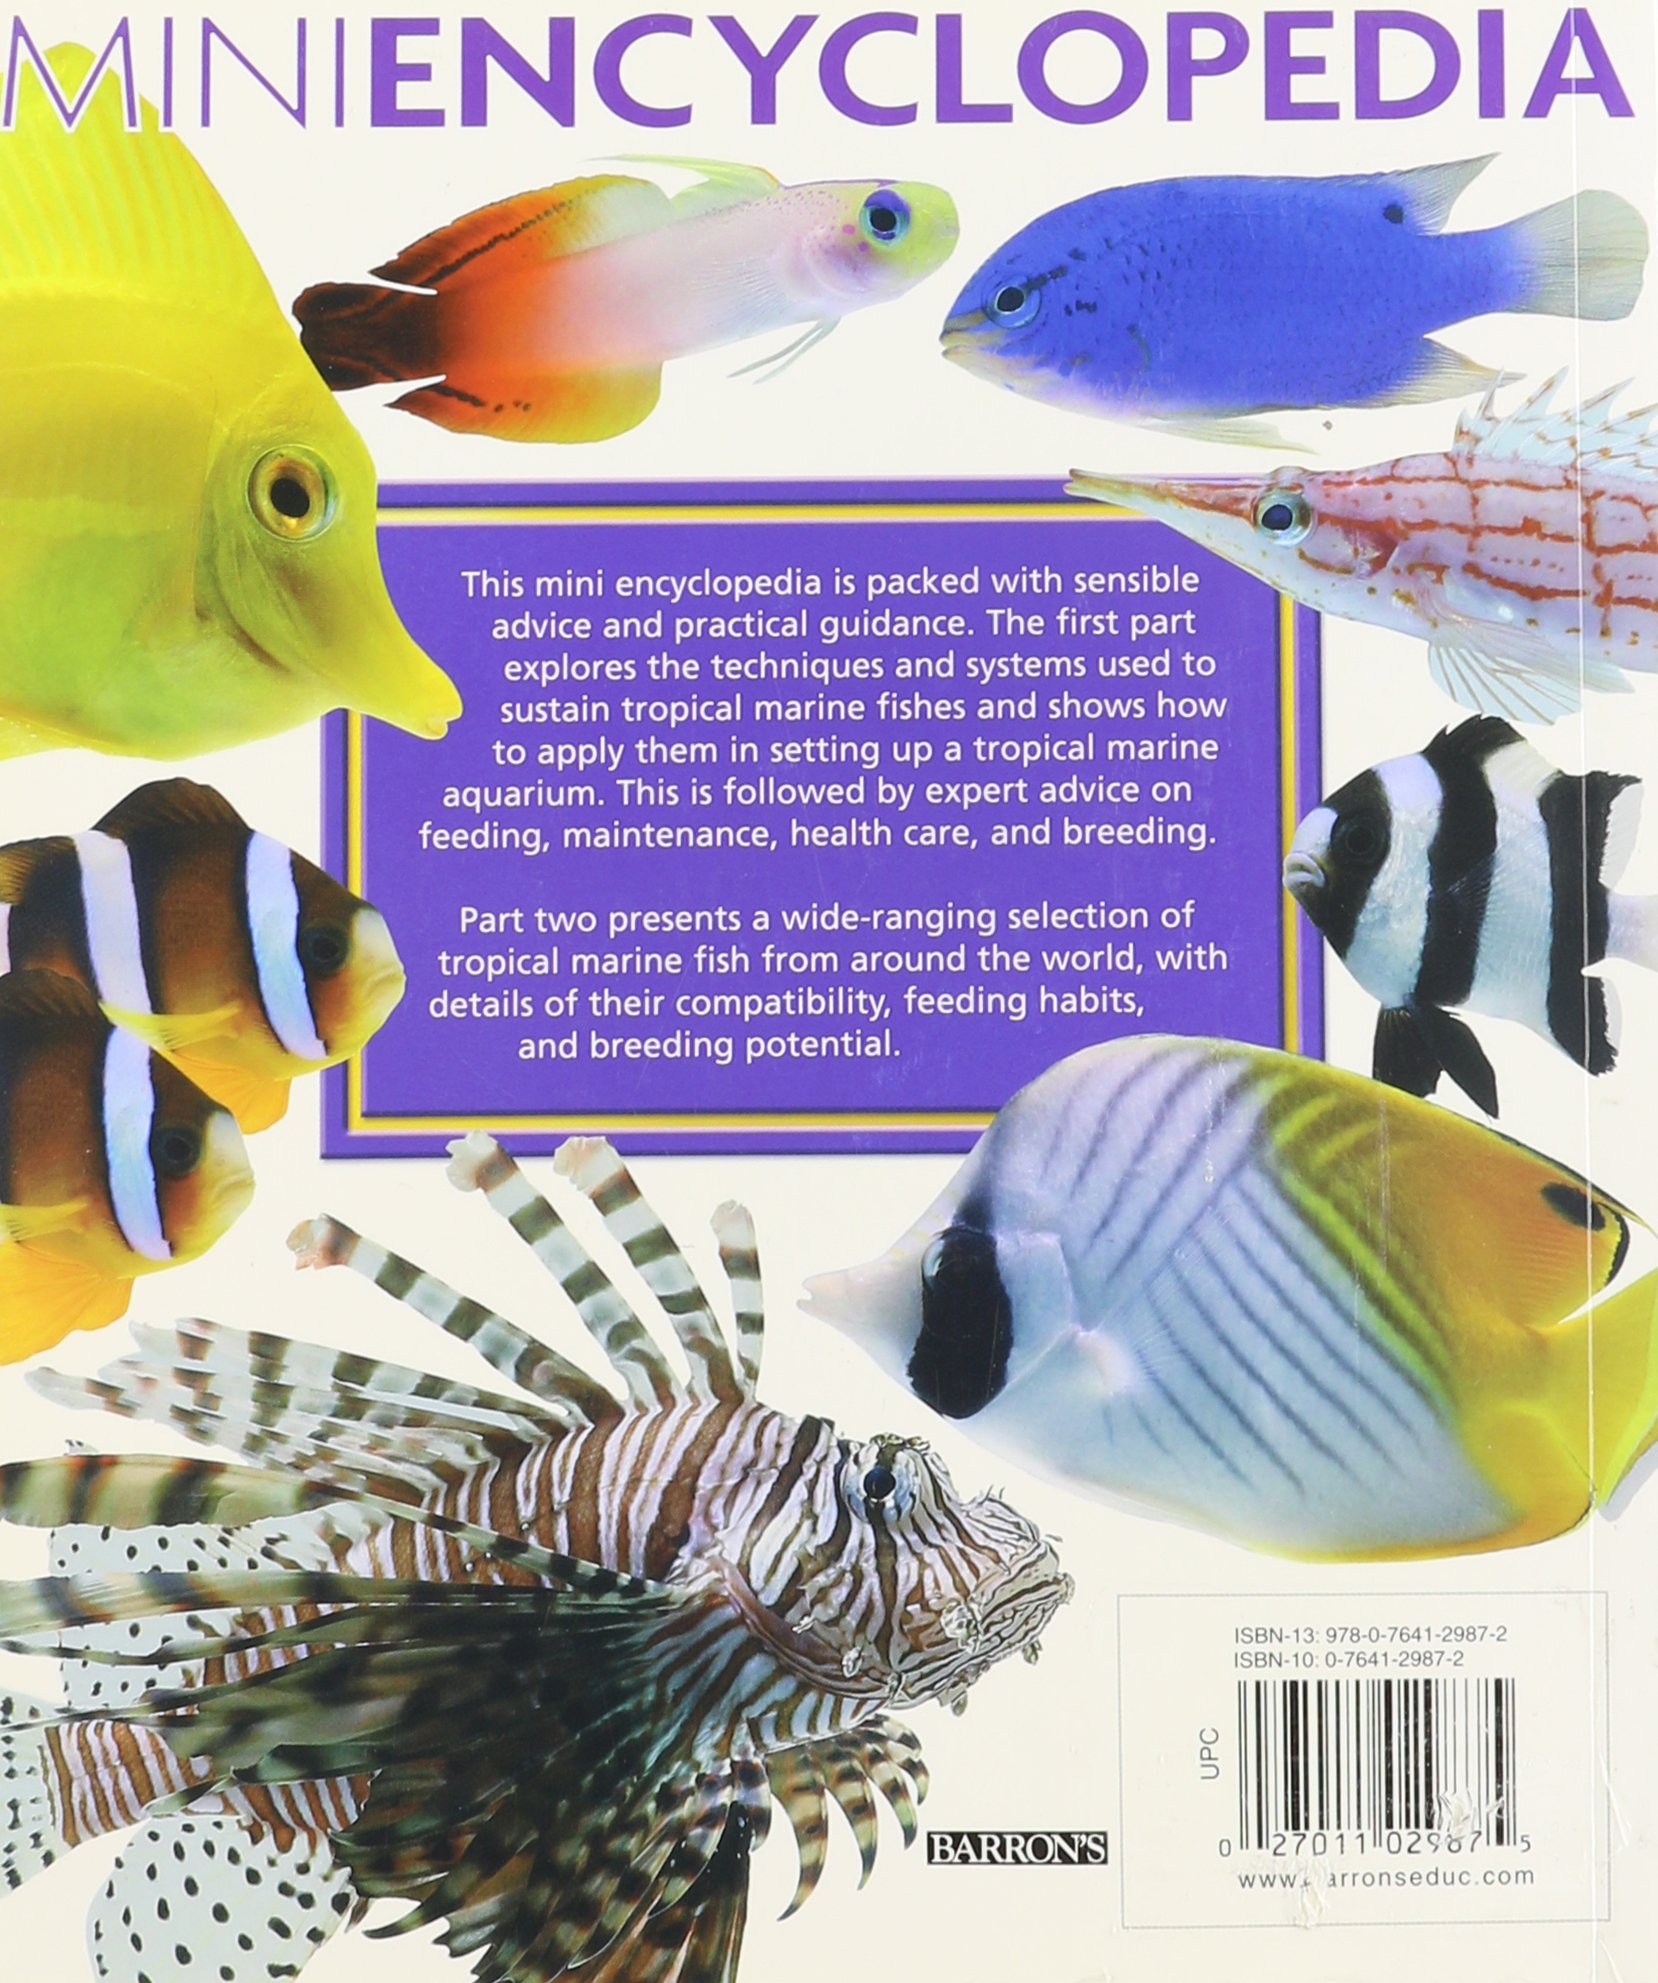 Maintenance and breeding of aquarium fish: a selection of sites